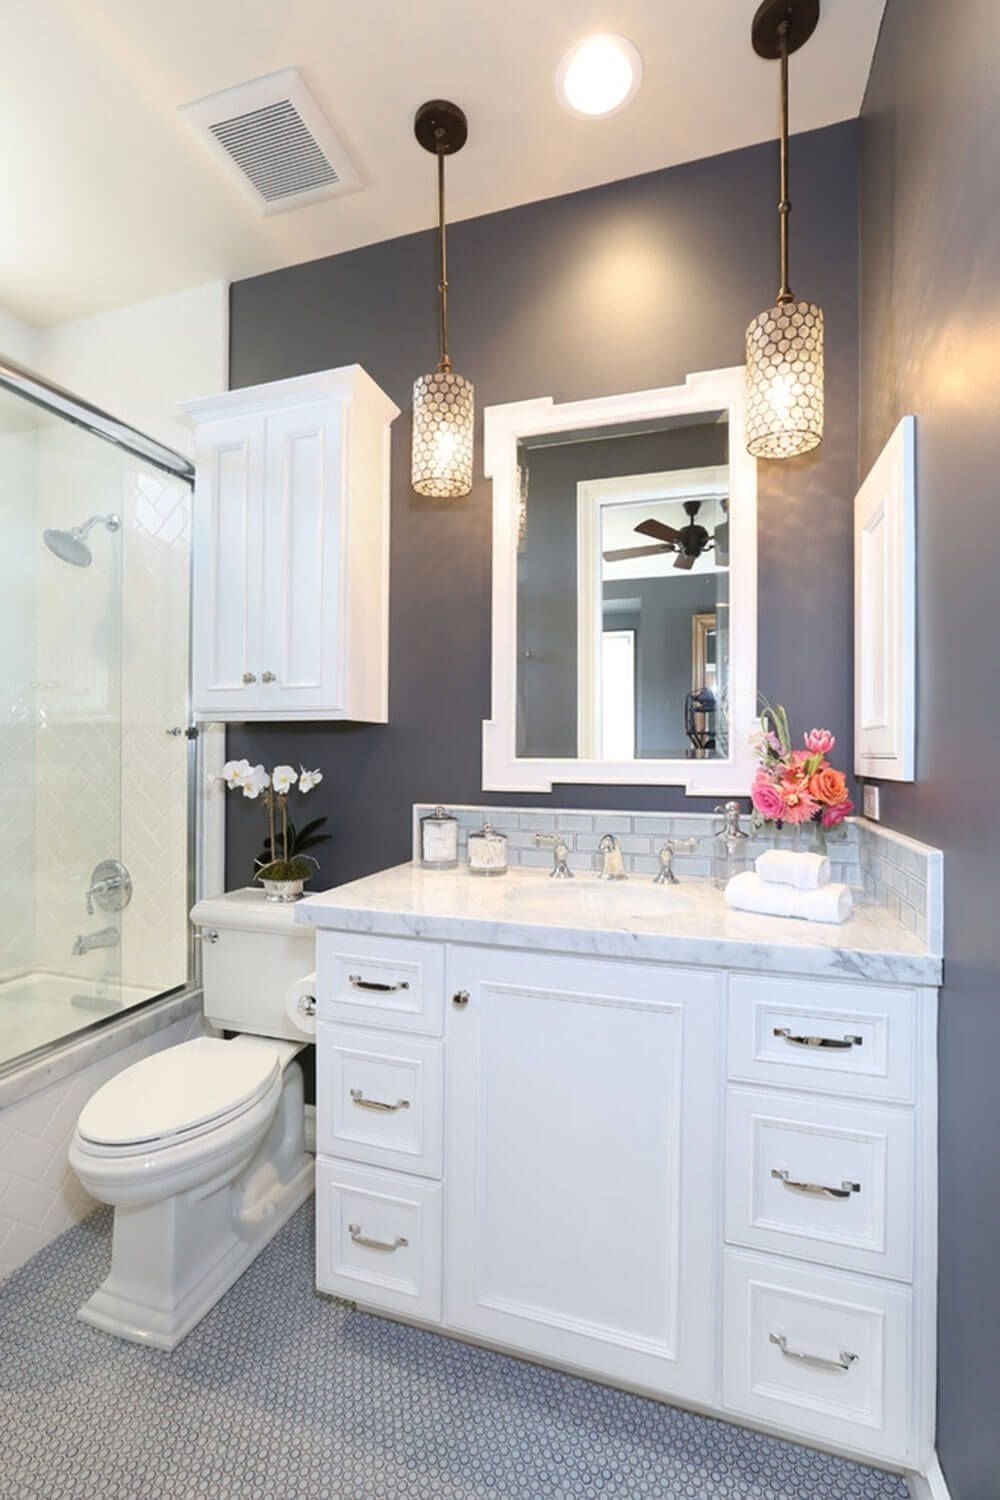 32 small bathroom design ideas for every taste | dark grey, dark and